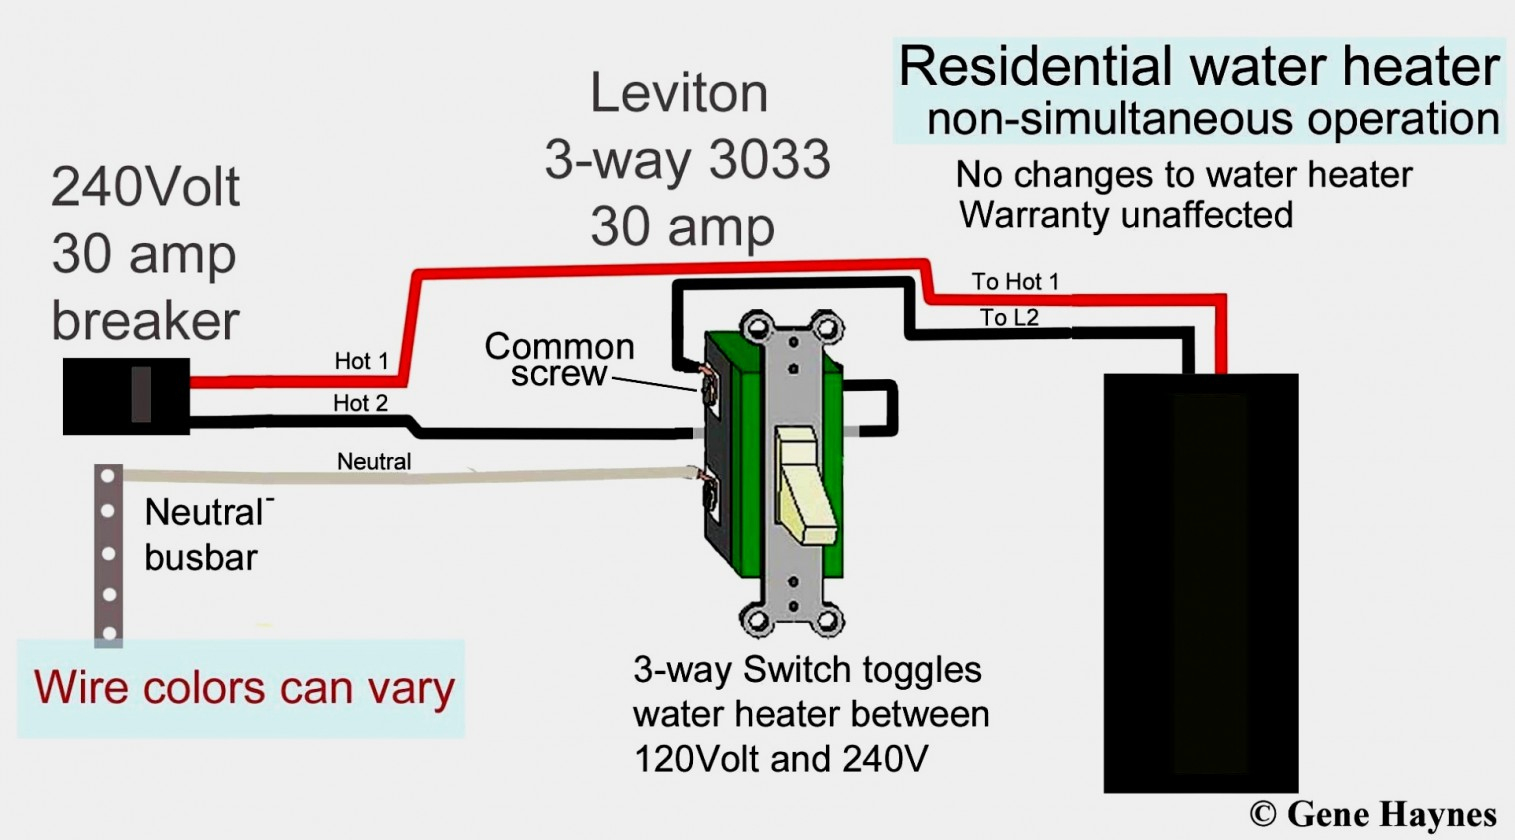 Leviton Double Switch Wiring Diagram | Manual E-Books - Leviton Double Switch Wiring Diagram